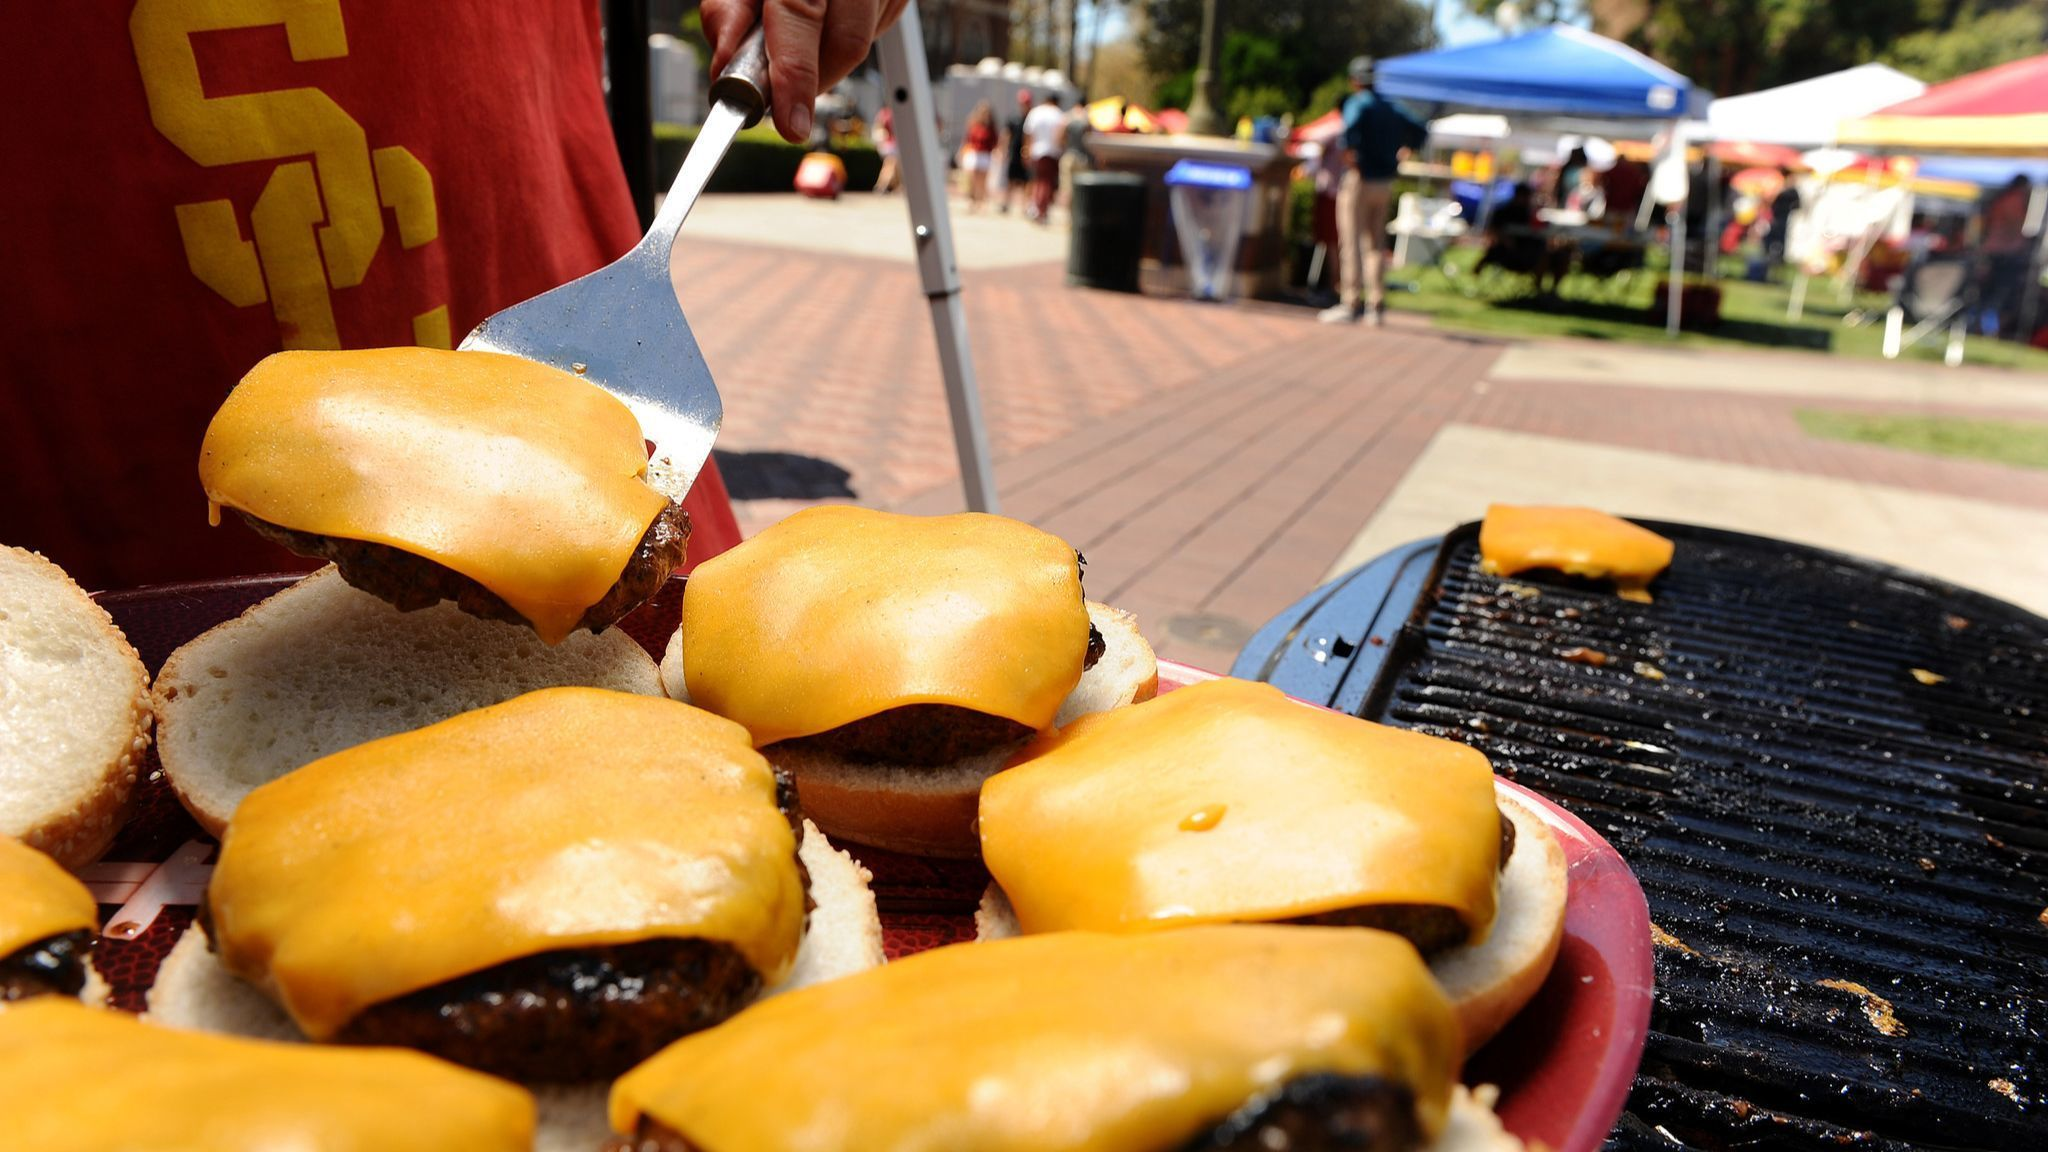 LOS ANGELES, CALIFORNIA SEPTEMBER 19, 2015-Burgers served at a USC tailgate party. (Wally Skalij/Los